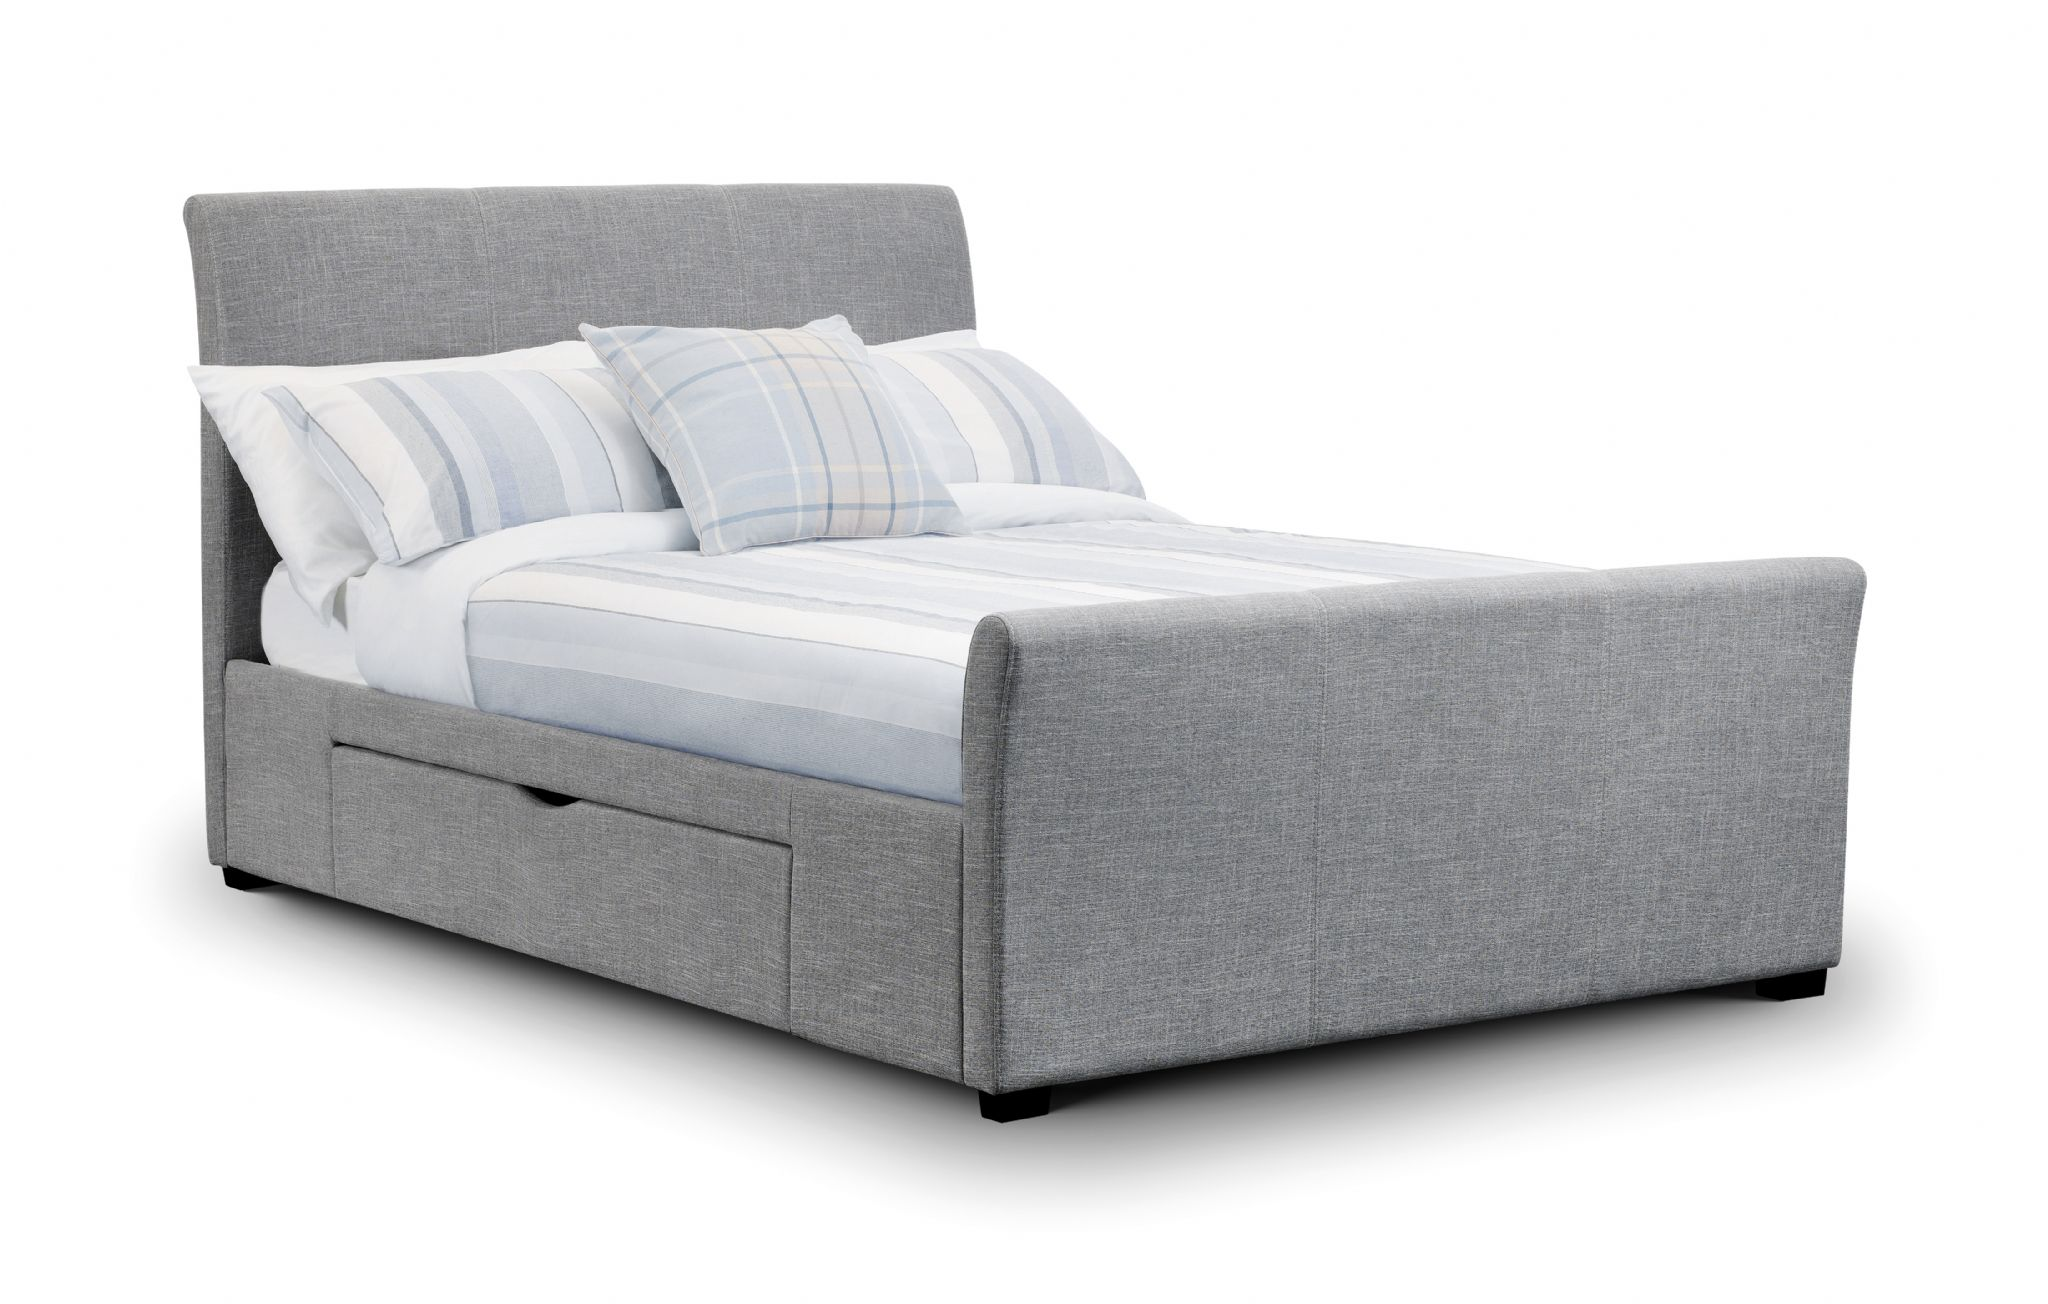 Coru A Light Grey Fabric King Size Bed With 2 Drawers Jb136